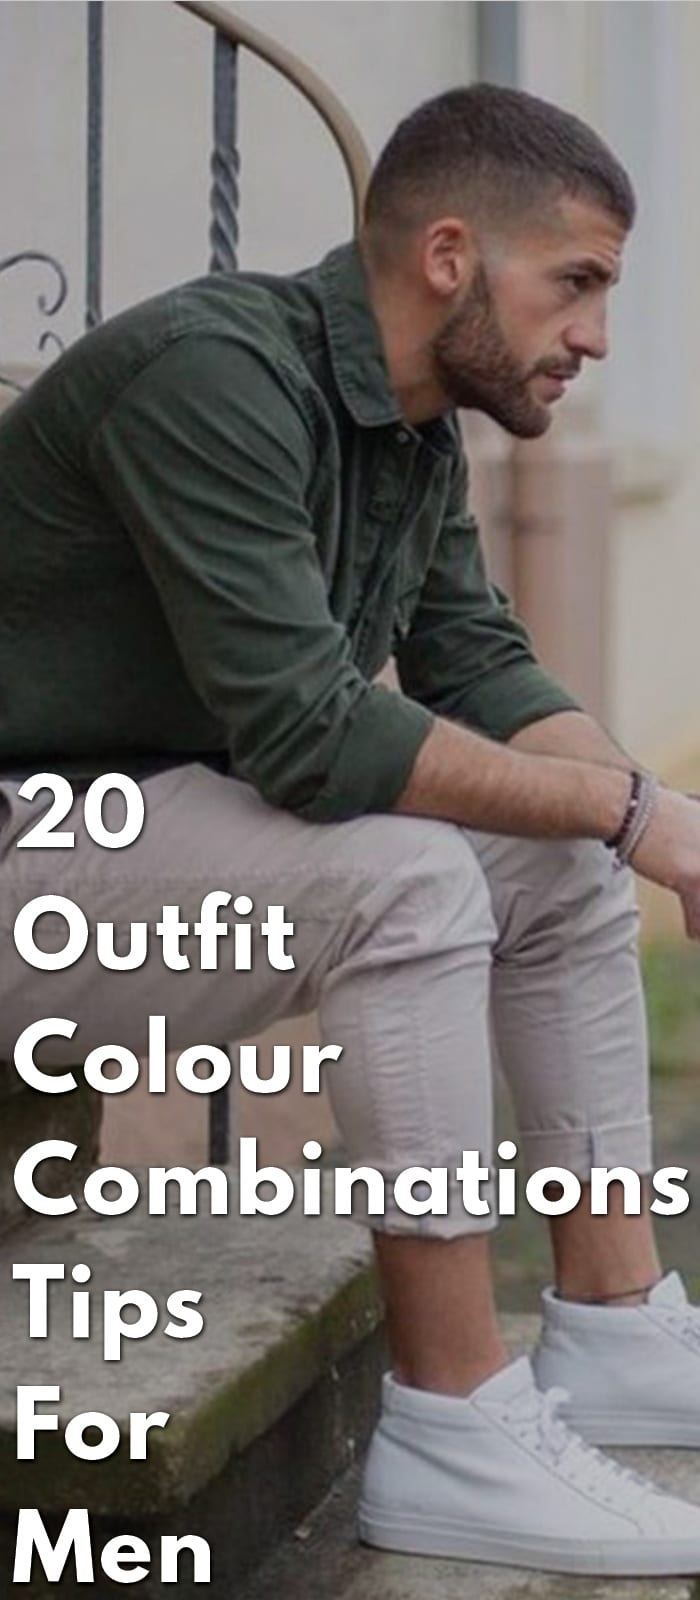 20-Outfit-Colour-Combinations-Tips-For-Men